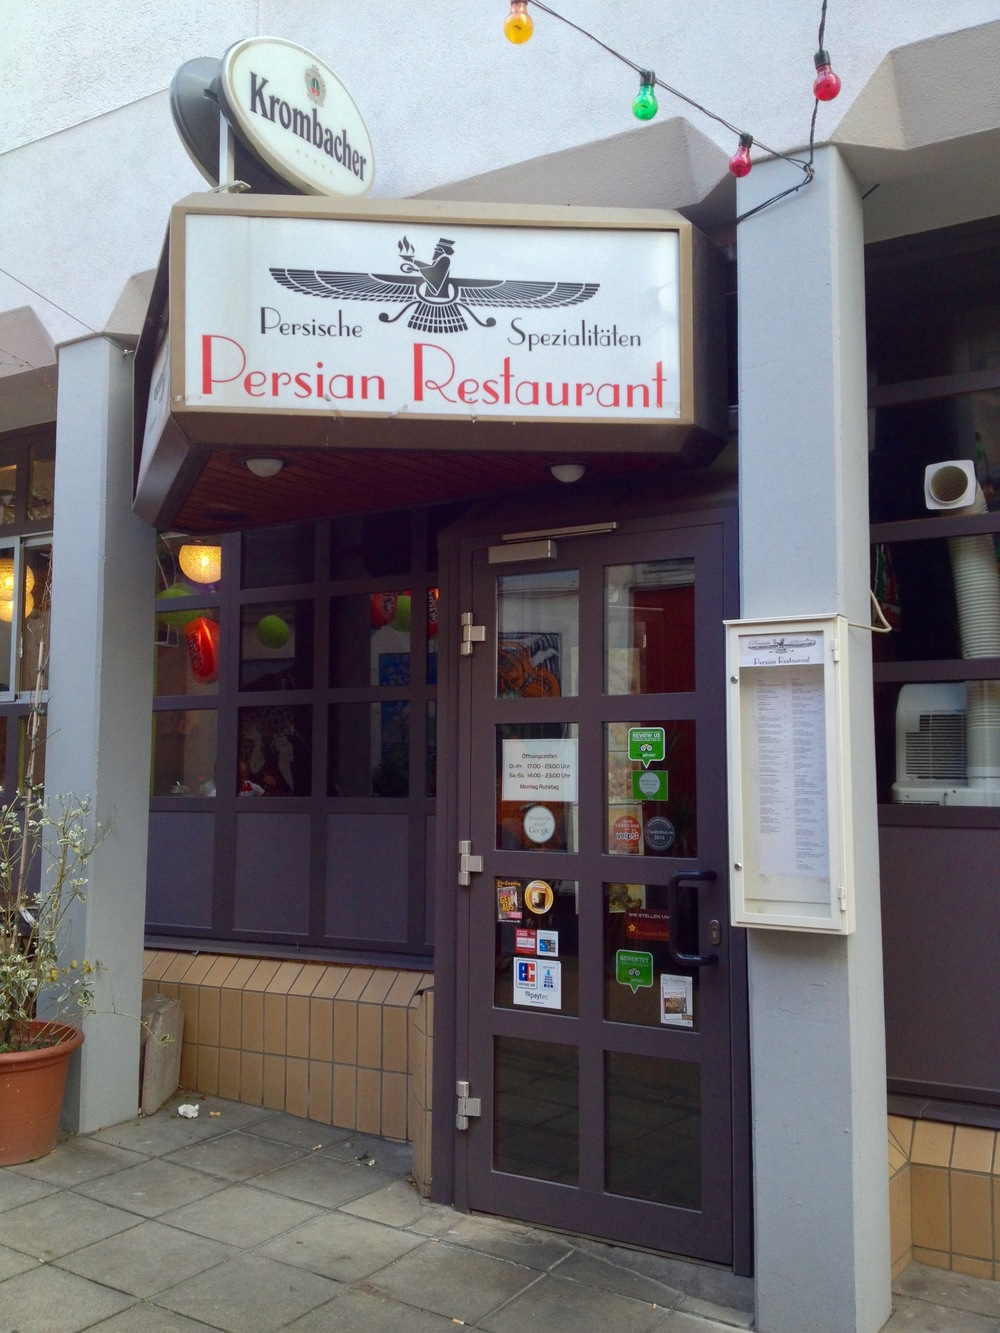 The Persian Restaurant